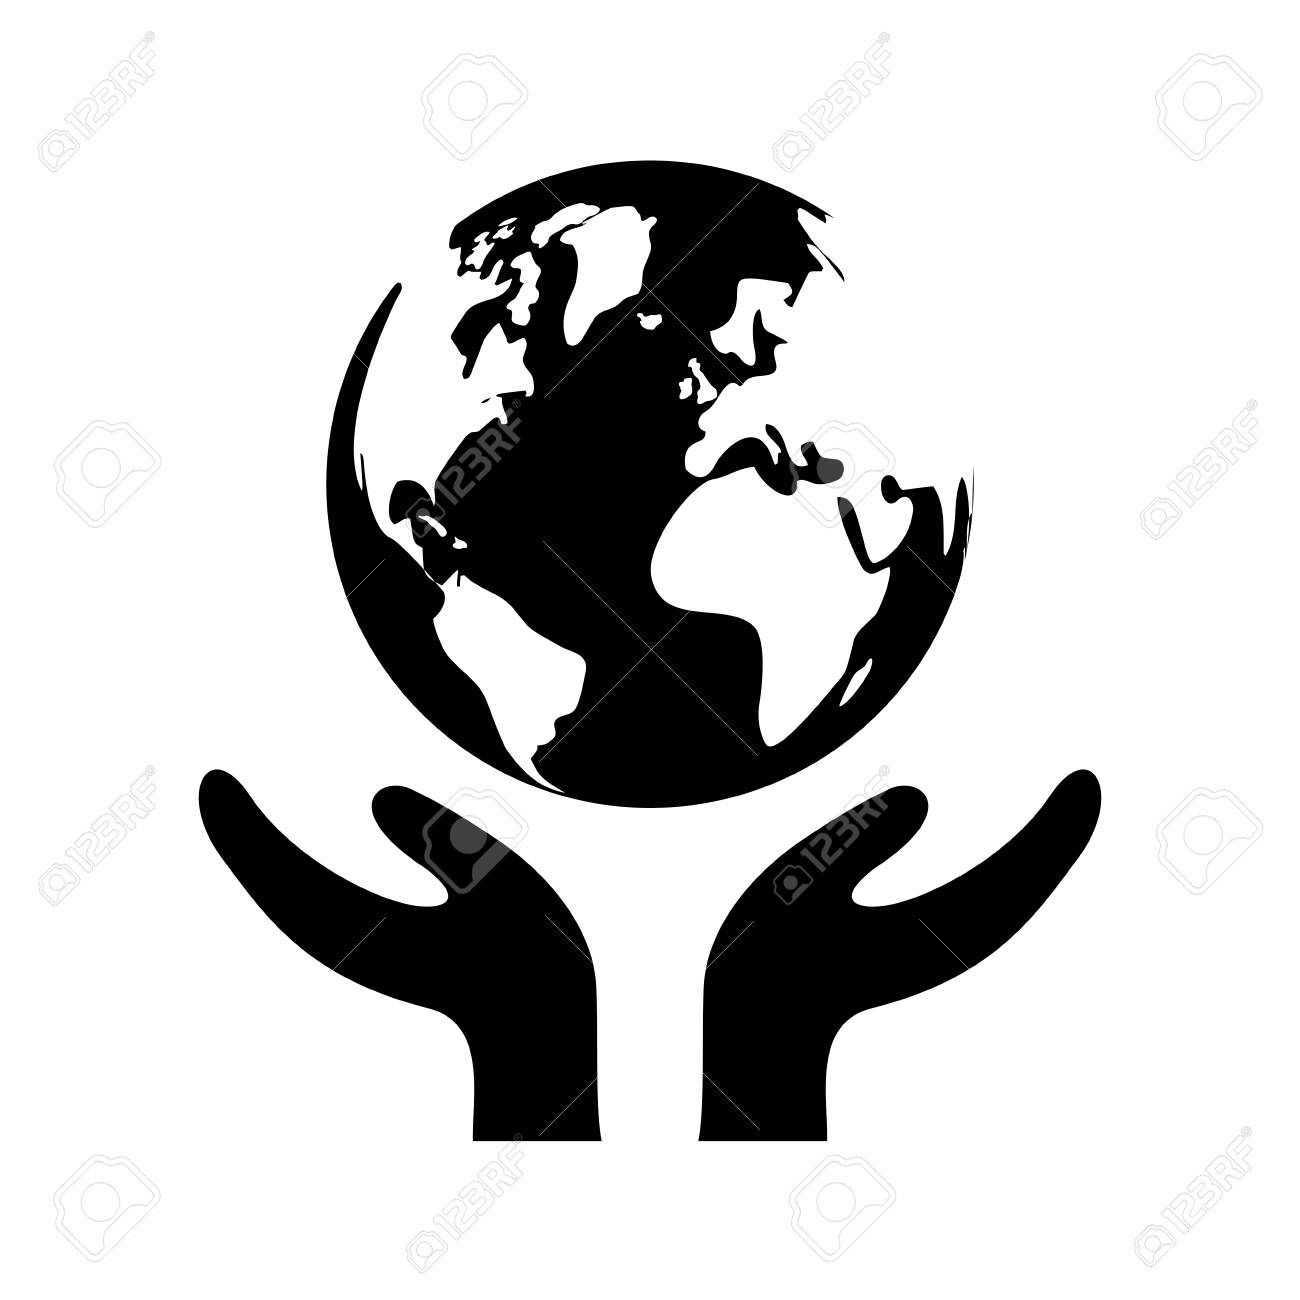 Save The World Icon Vector Illustration Graphic Design Royalty Free